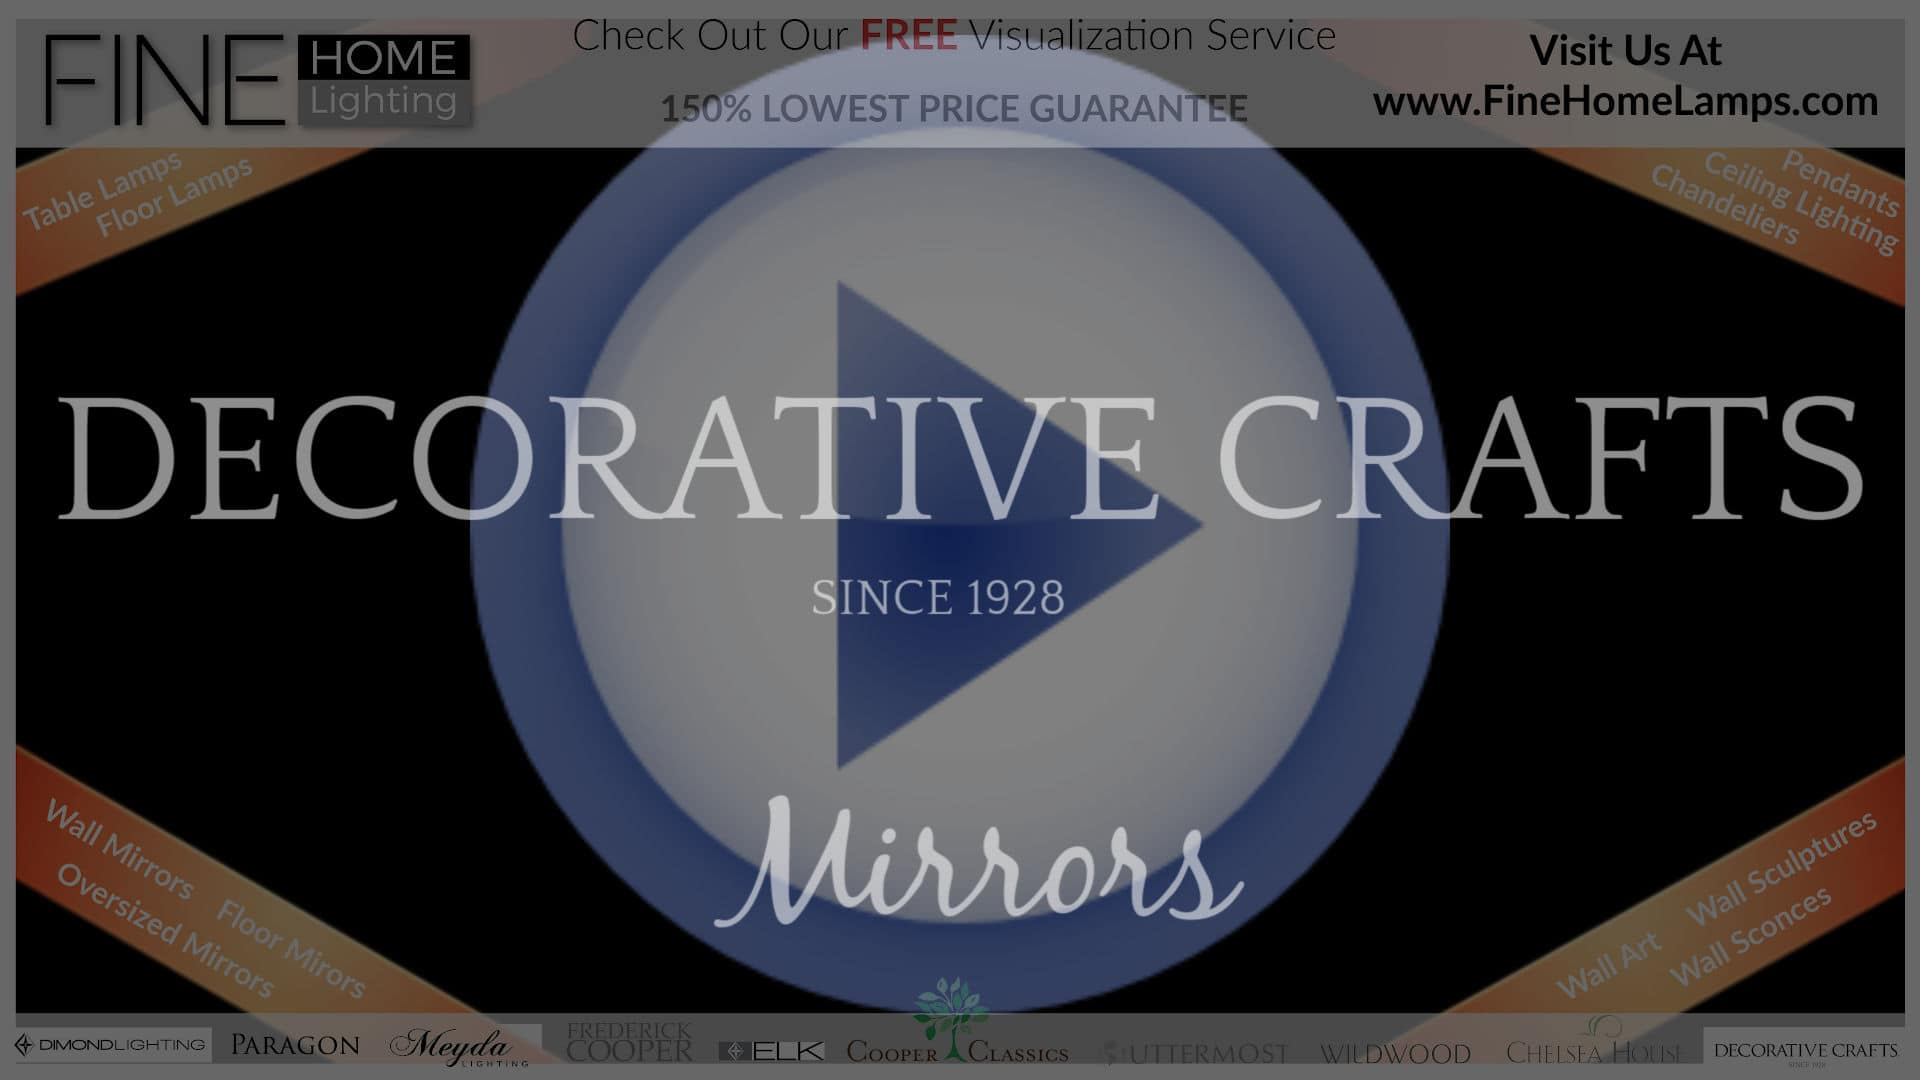 DECORATIVE-CRAFTS-Mirrors-Thanks-for-watching-this-video-Get-an-additional-15-percent-off-your-next-purchase-Use-Coupon-Code-VIDEO